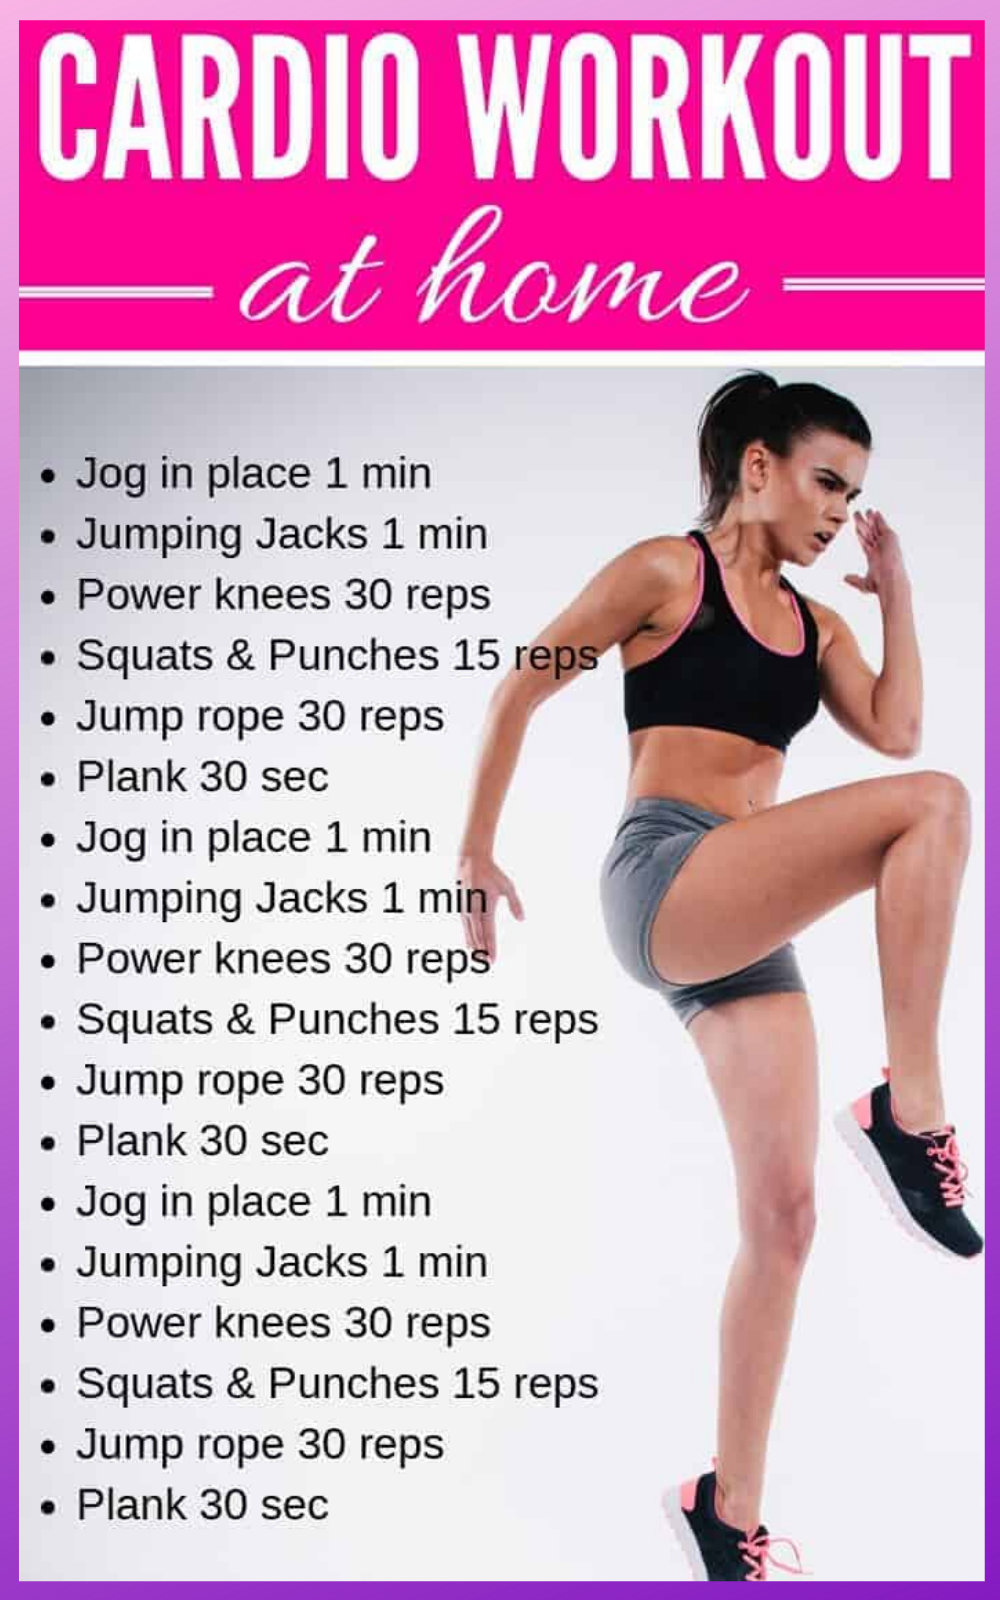 Easy Beginner Cardio Workout Plan at Home